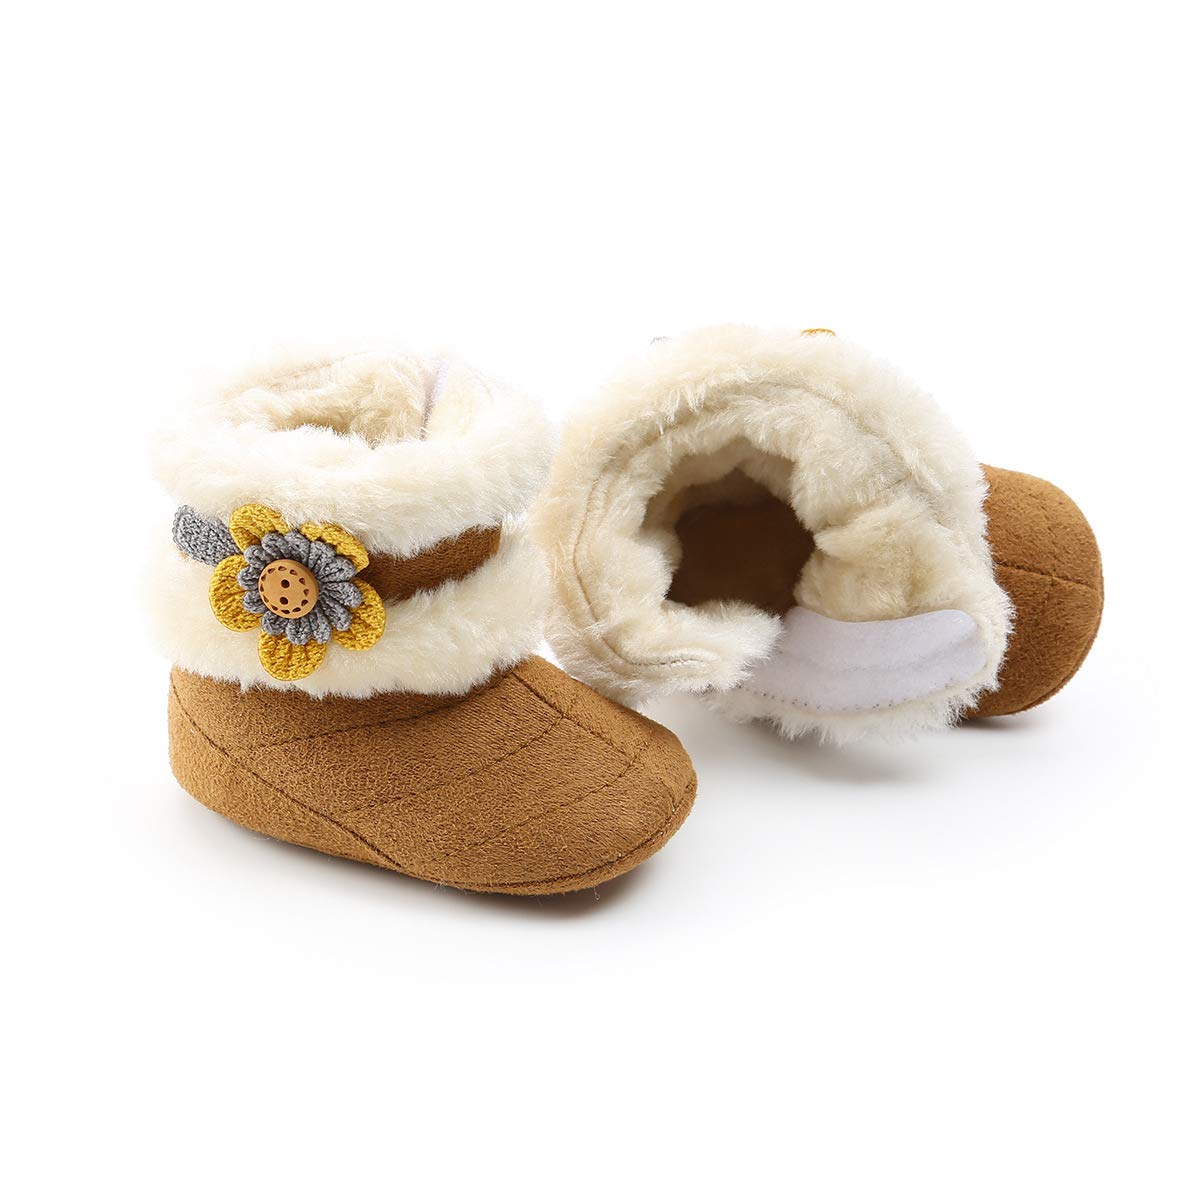 Tcesud Winter Warm Baby Boys Girls Snow Boots Soft Sole Fur Infant Toddler Slip On Bowknot Booties for Baby Girls 0-18 Months